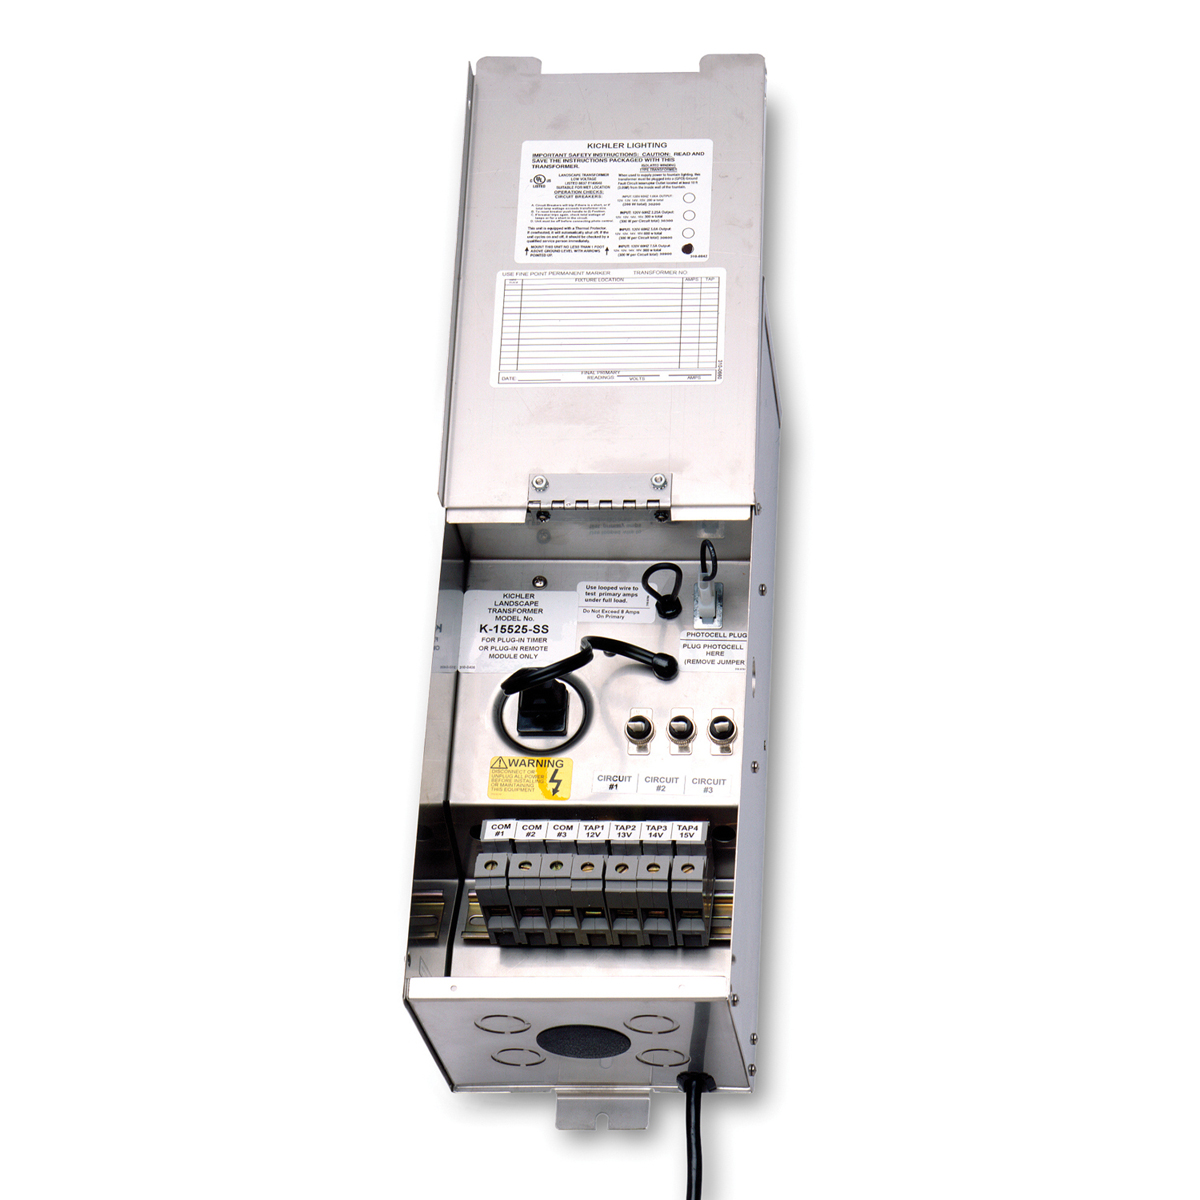 transformer pro series transformer 900w pro series shown in stainless